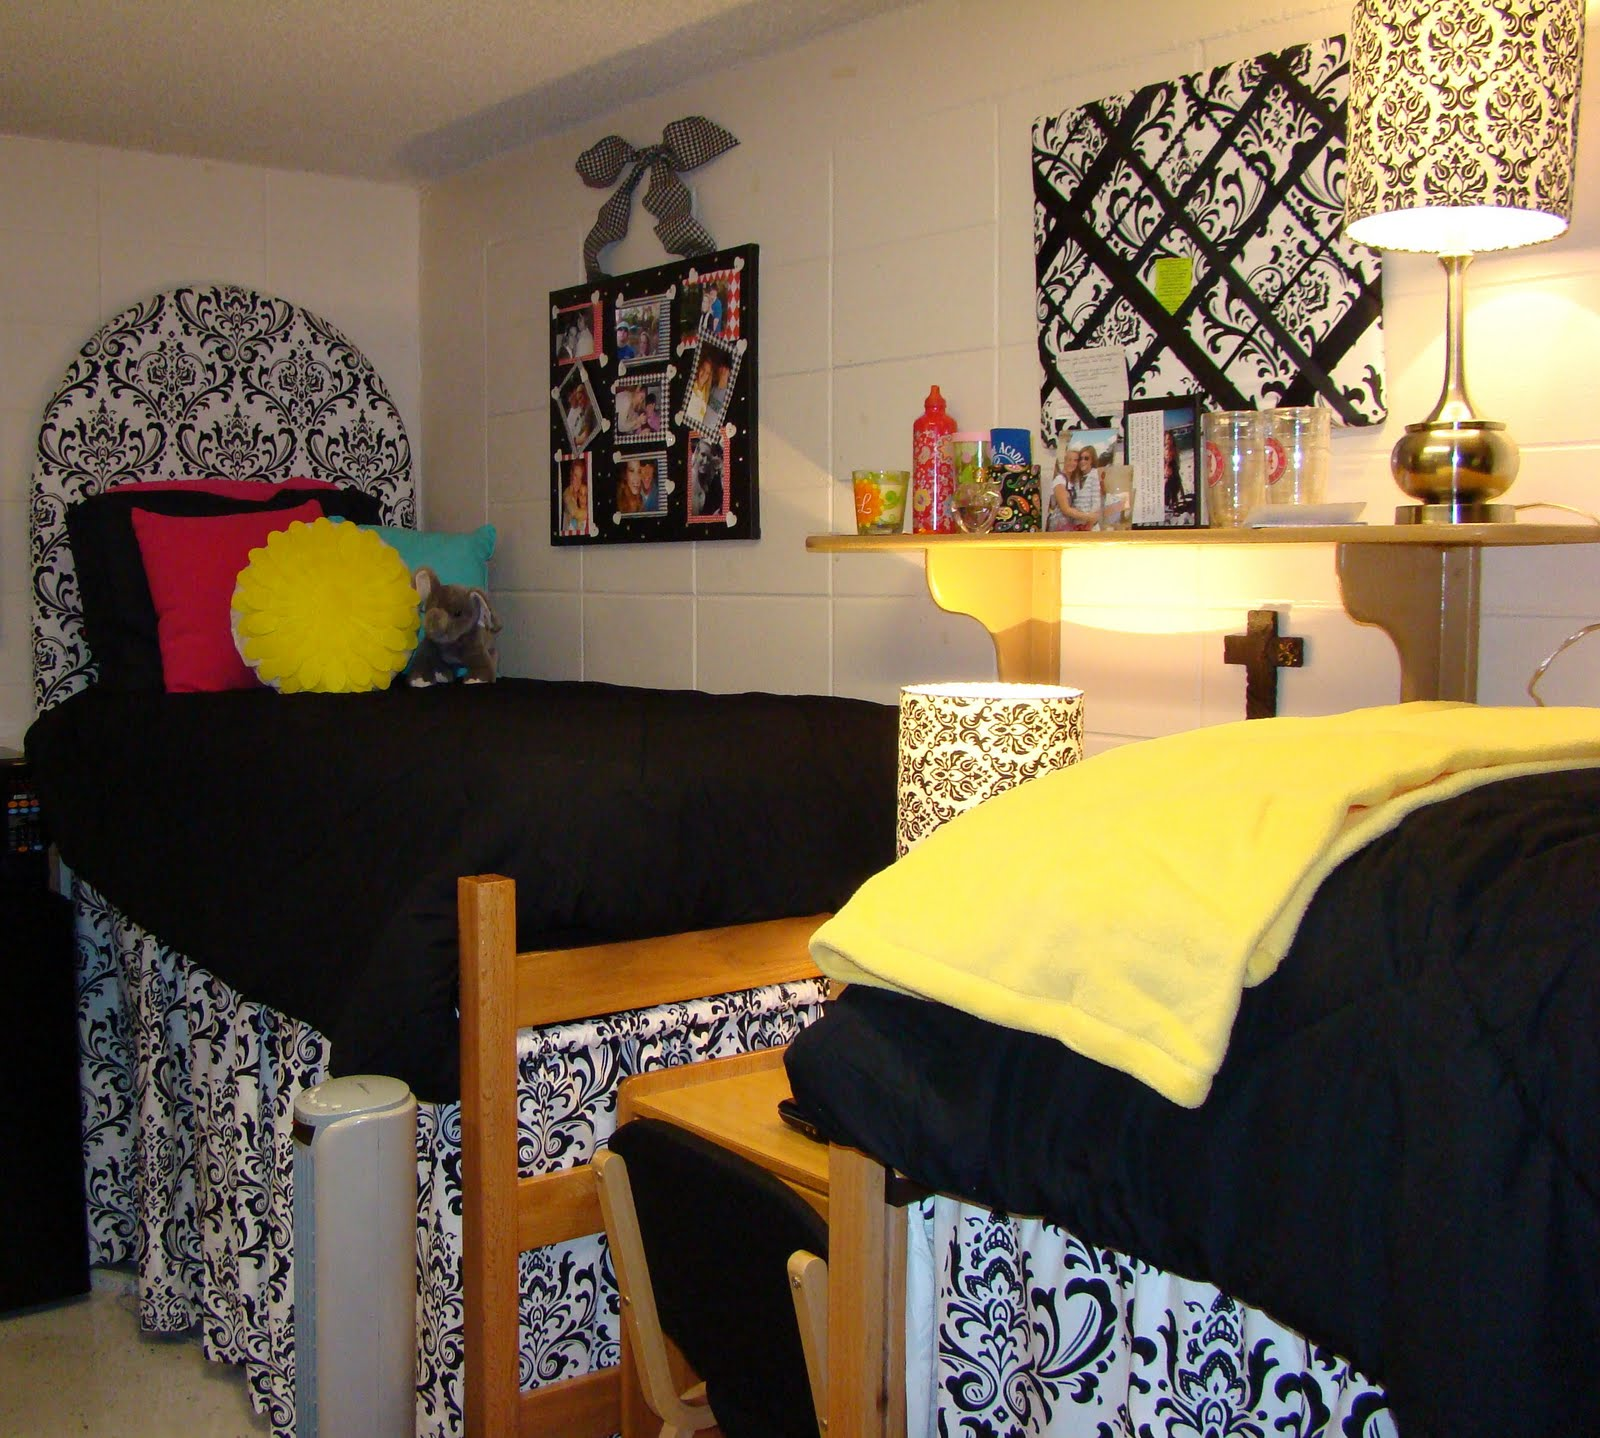 Doodlebug designs mg dorm room upholstered headboard Creative dorm room ideas